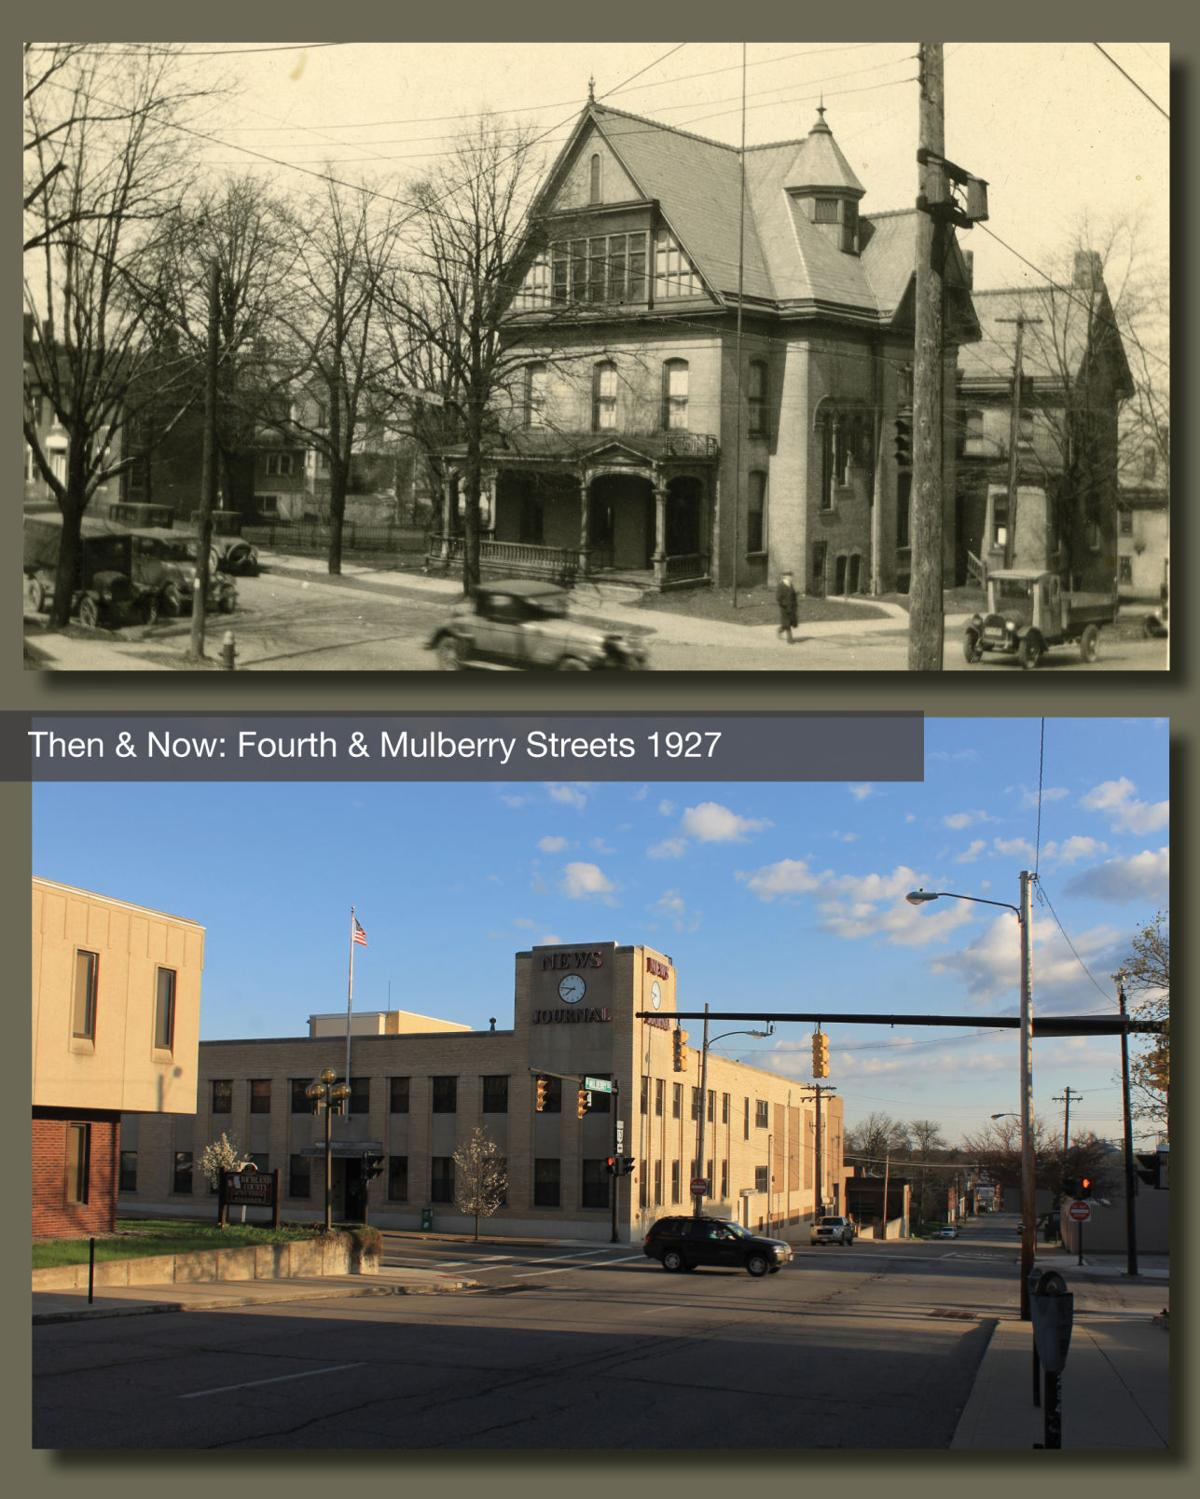 Then & Now: Fourth & Mulberry